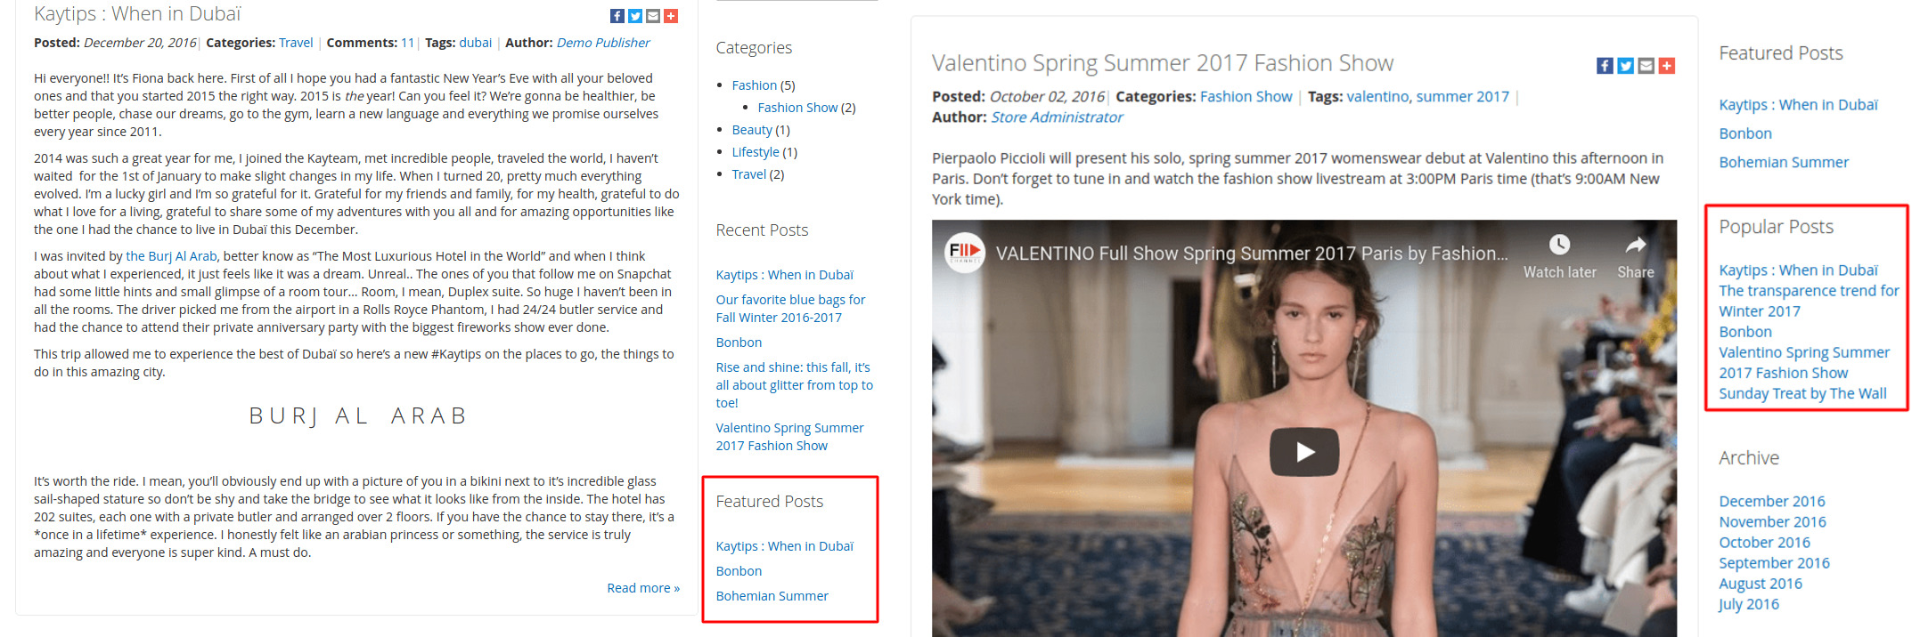 Magento 2 featured and popular posts